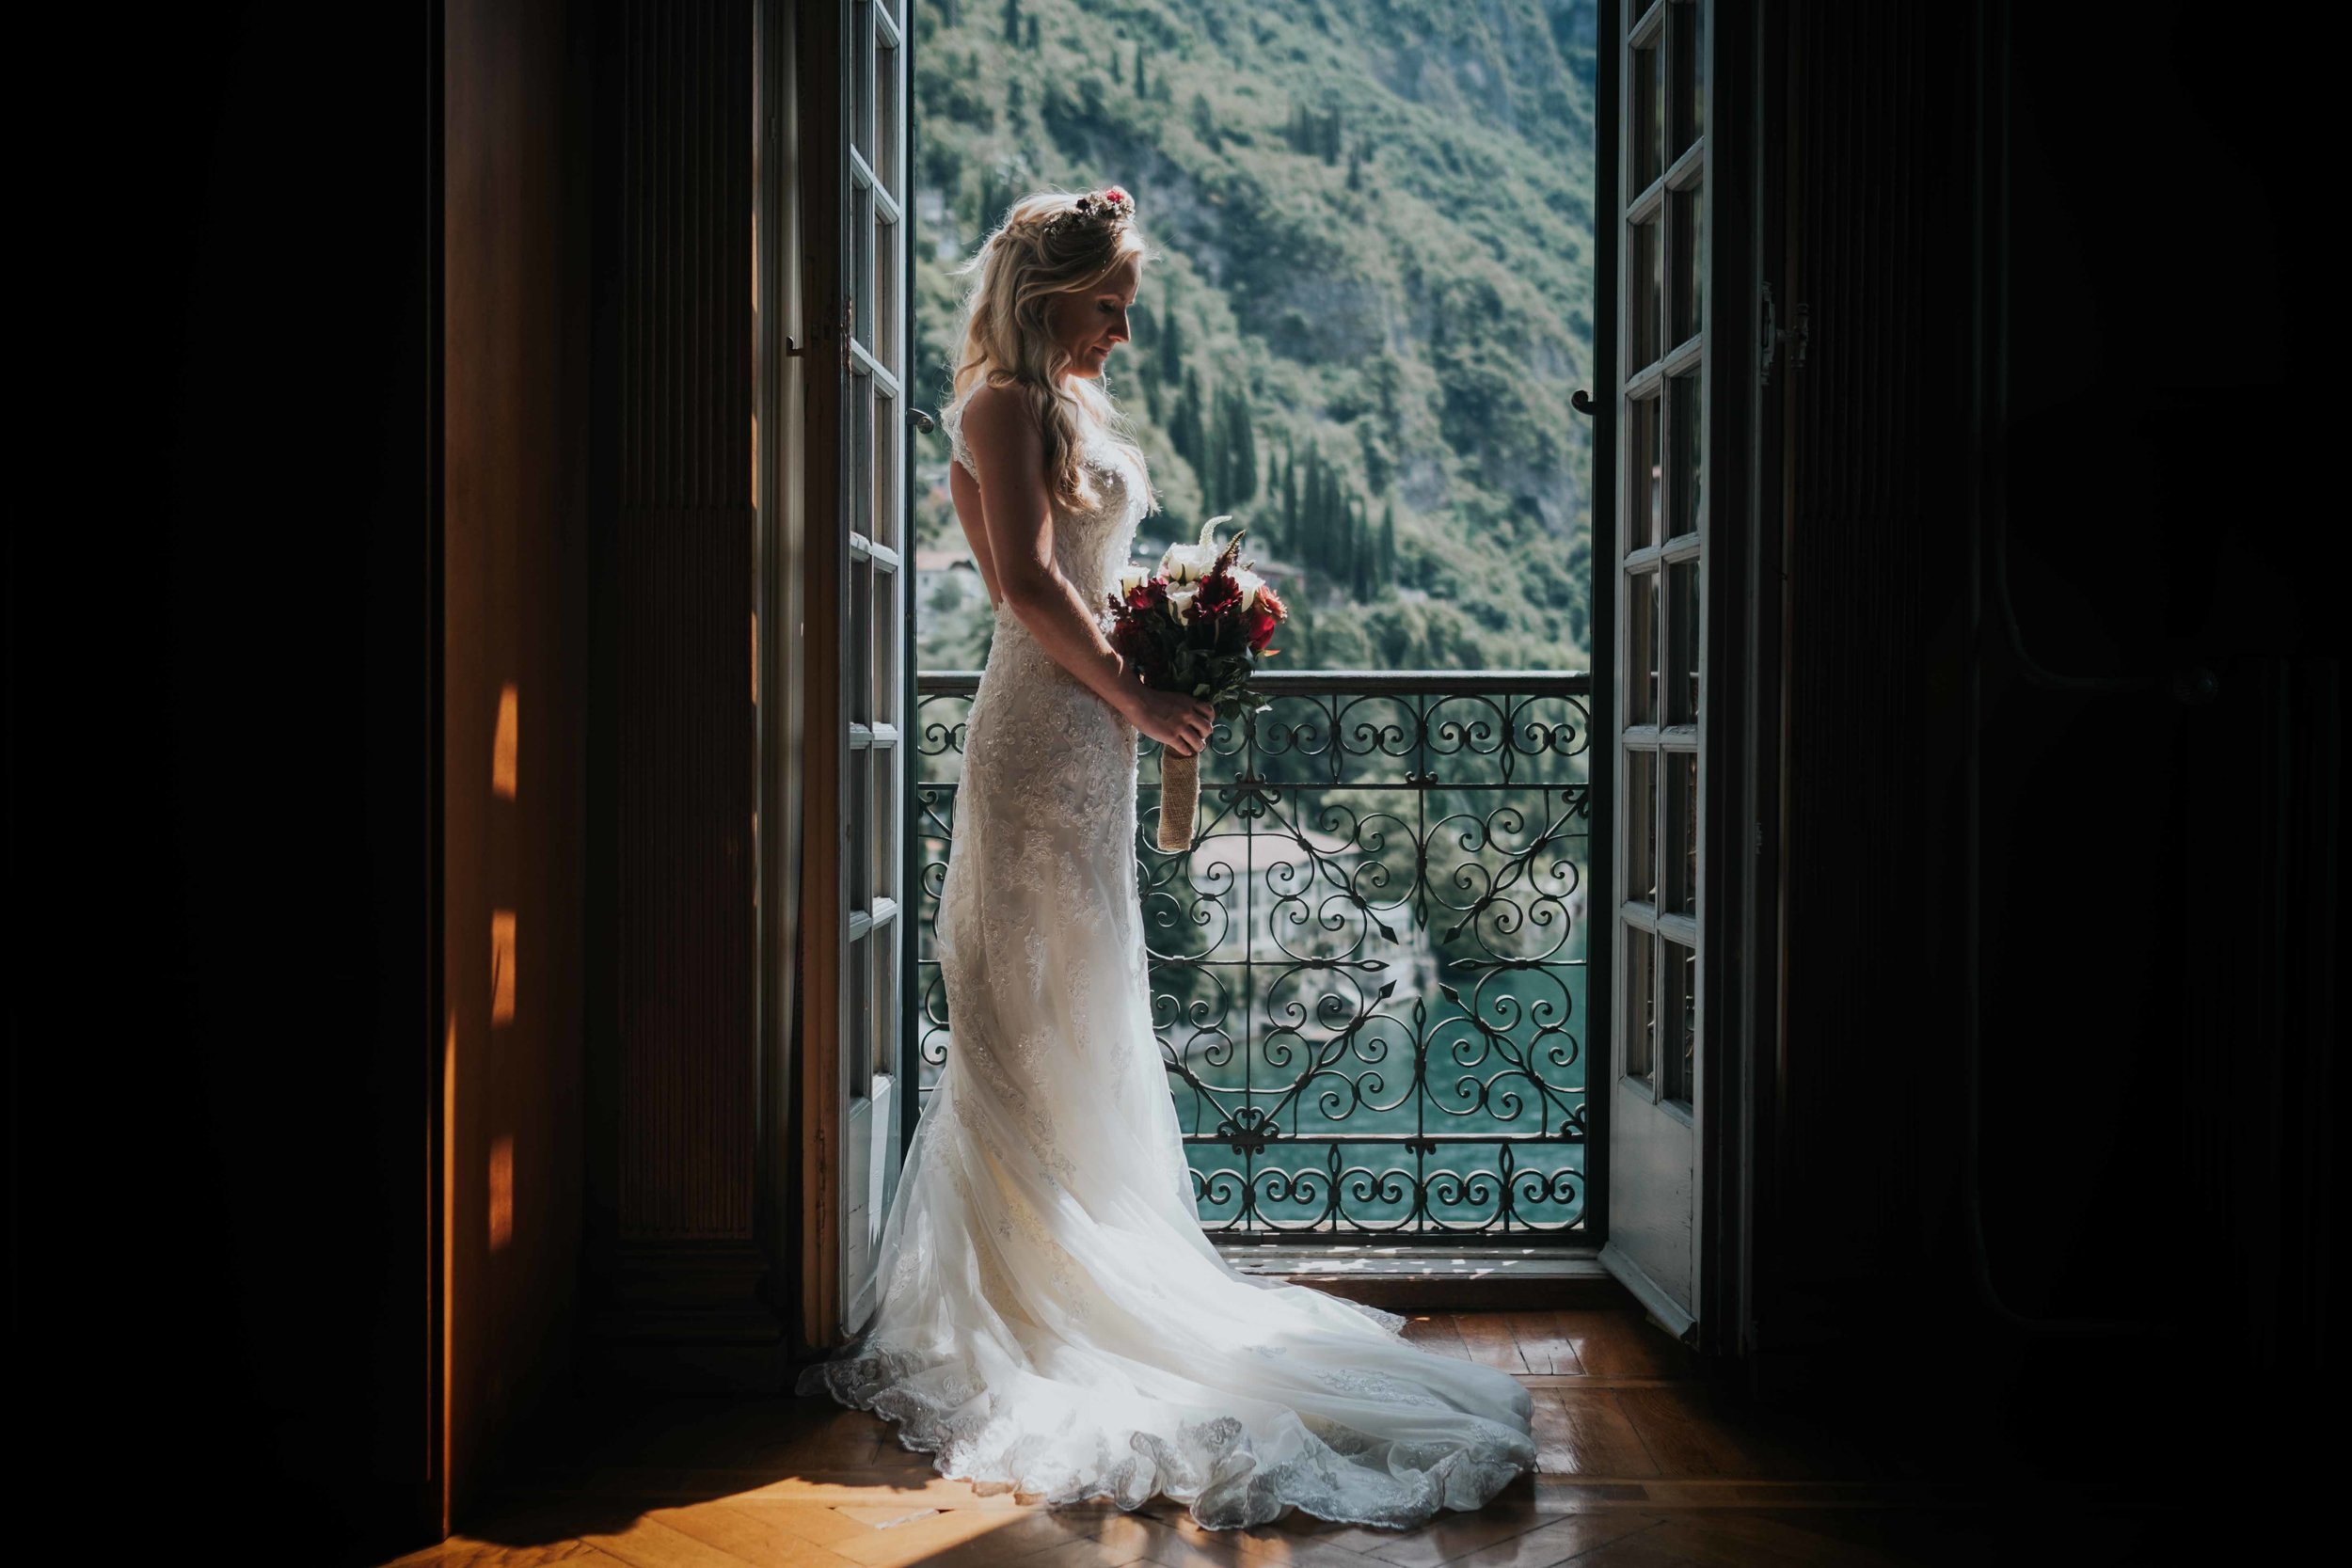 Laco Como Italy destination wedding photographer cheshire north west england documentry photography (28 of 117).jpg